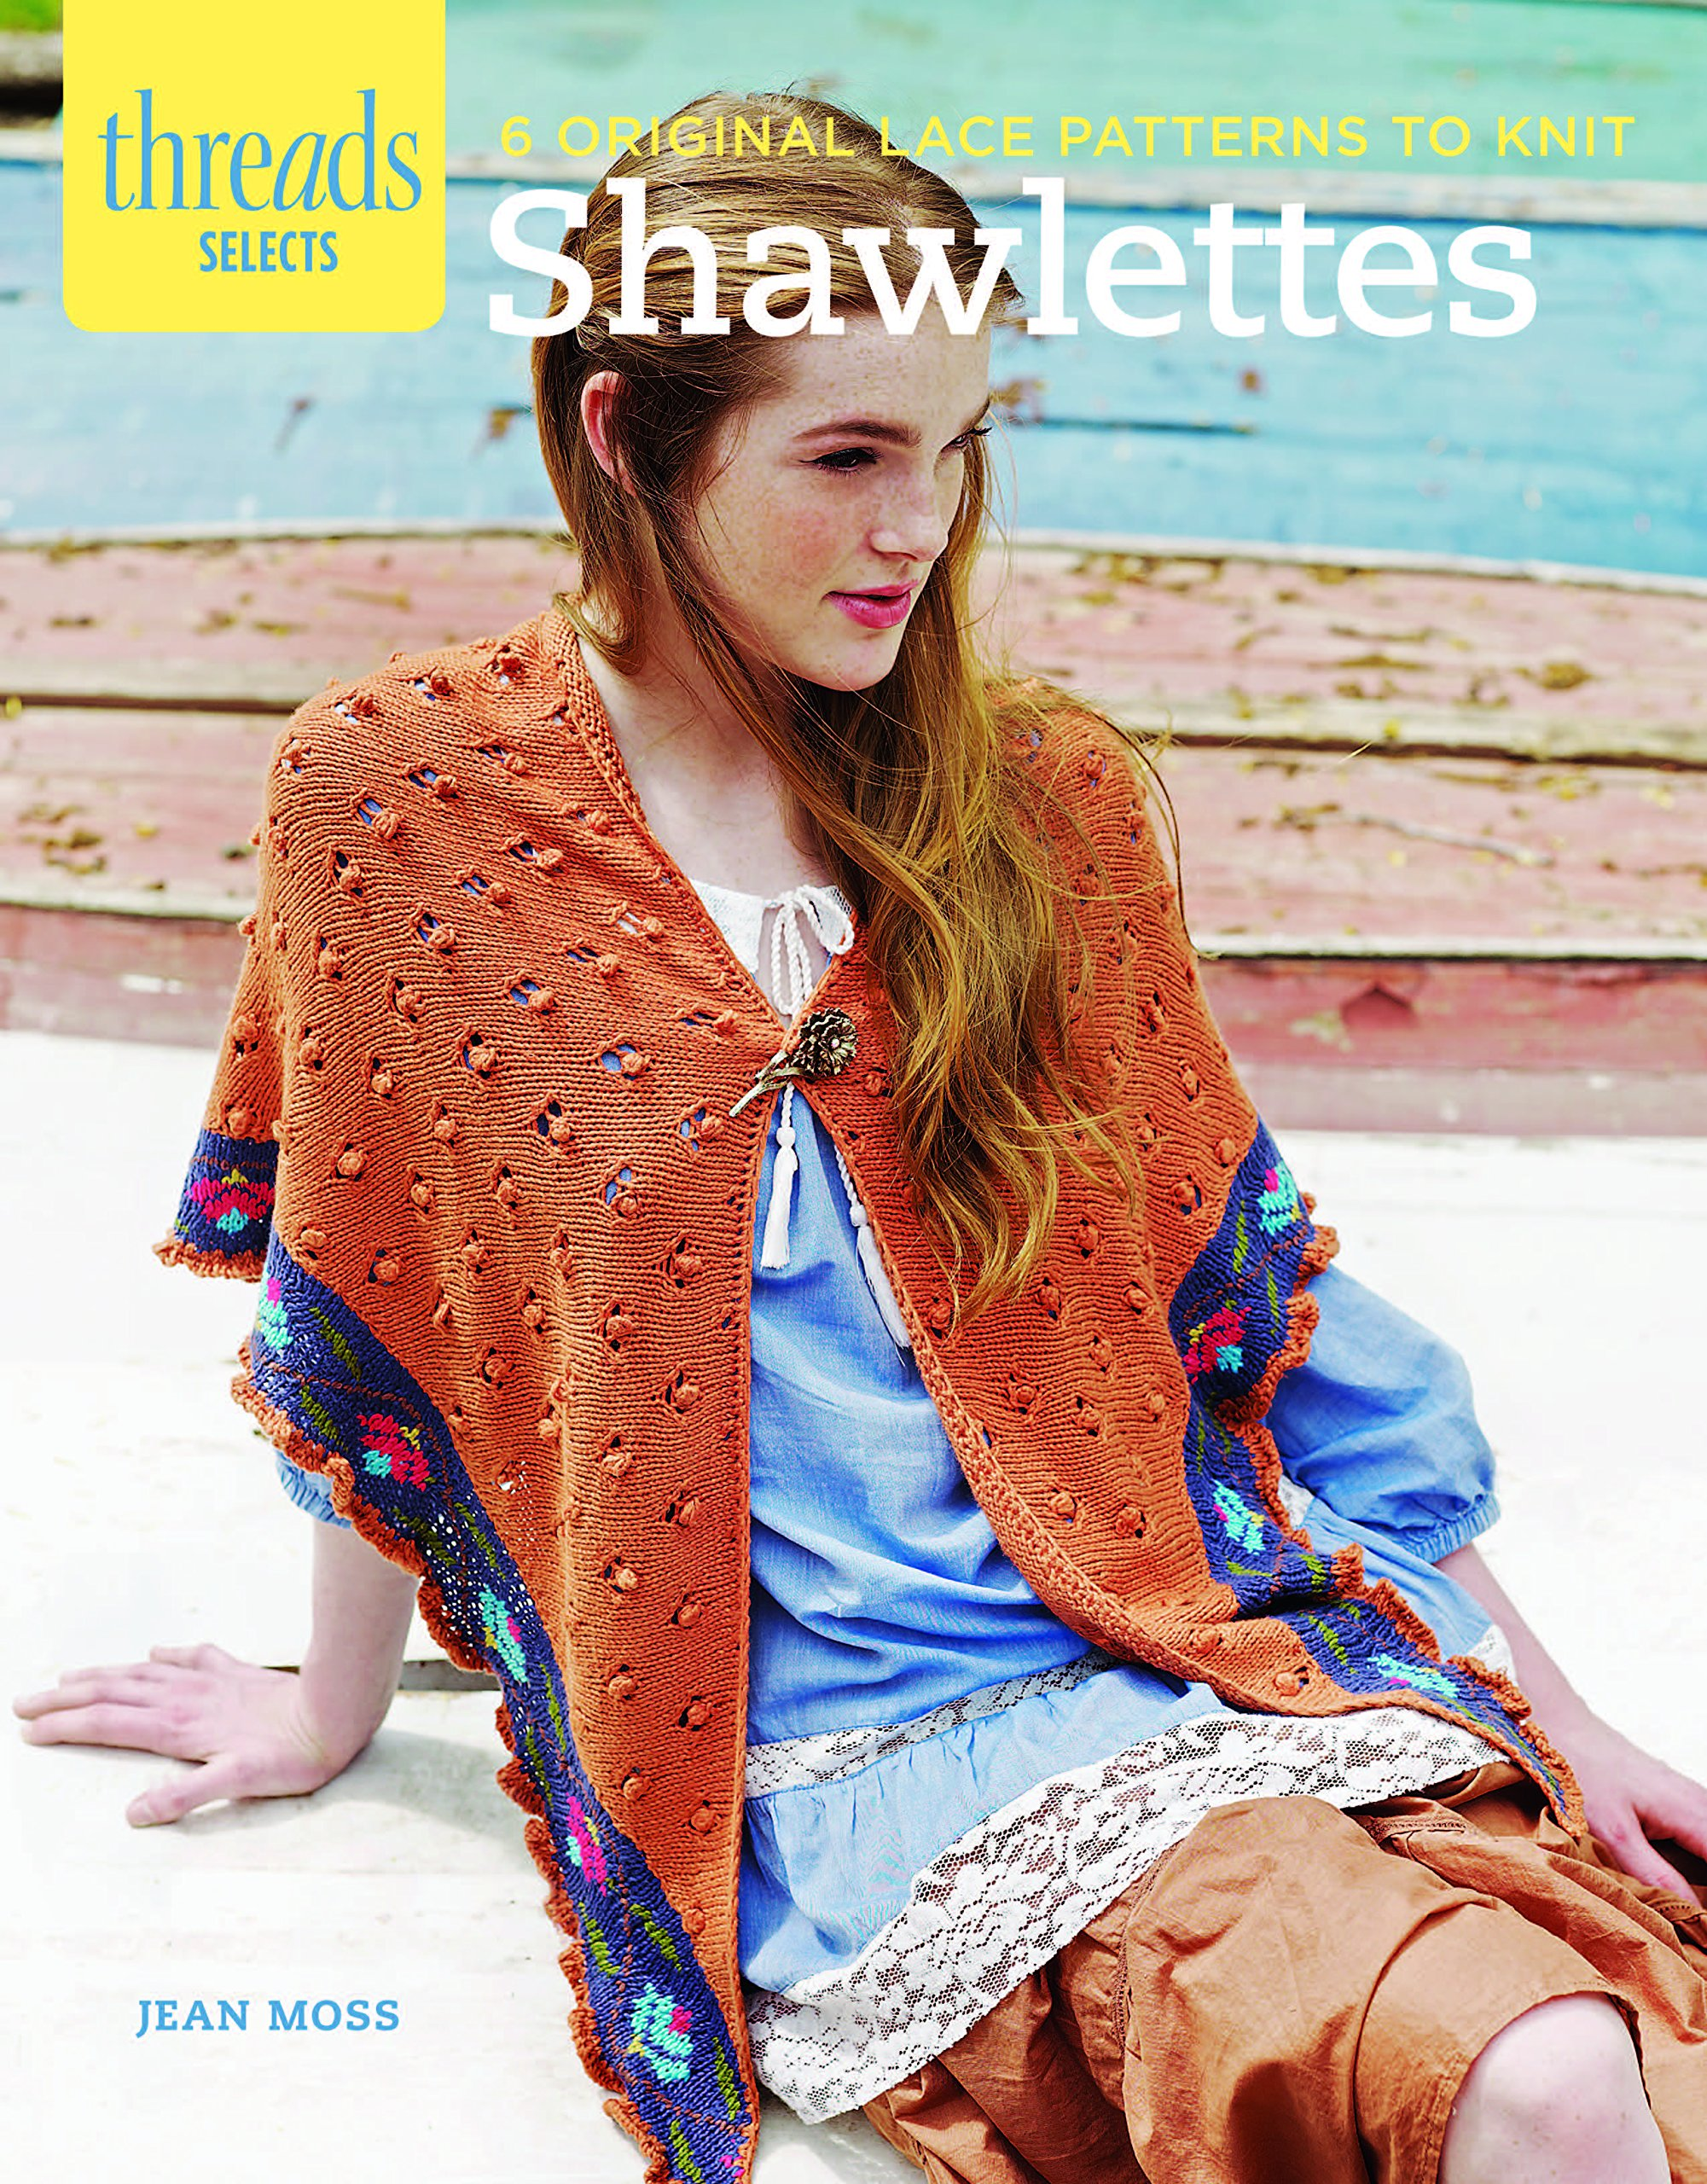 Download Shawlettes: 6 original lace patterns to knit (Threads Selects) ebook